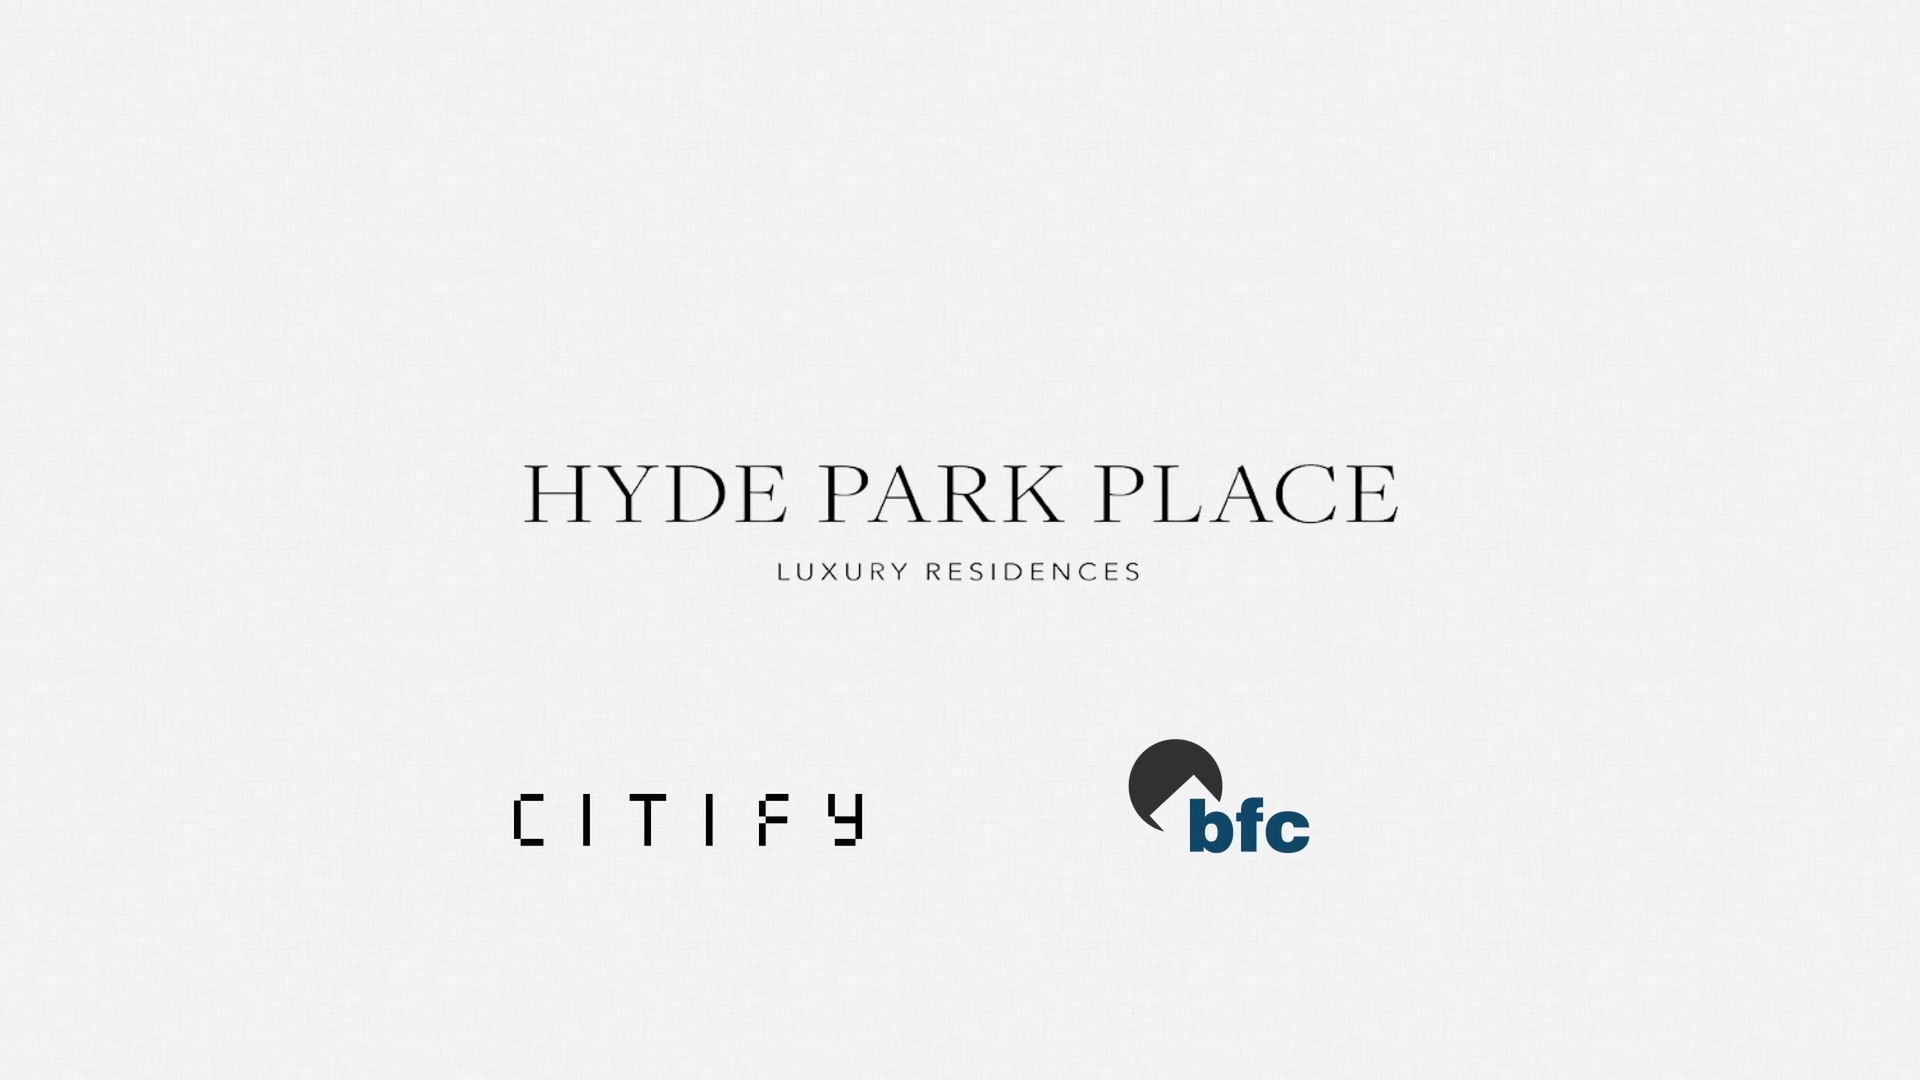 Citify - Hyde Park - June 2020